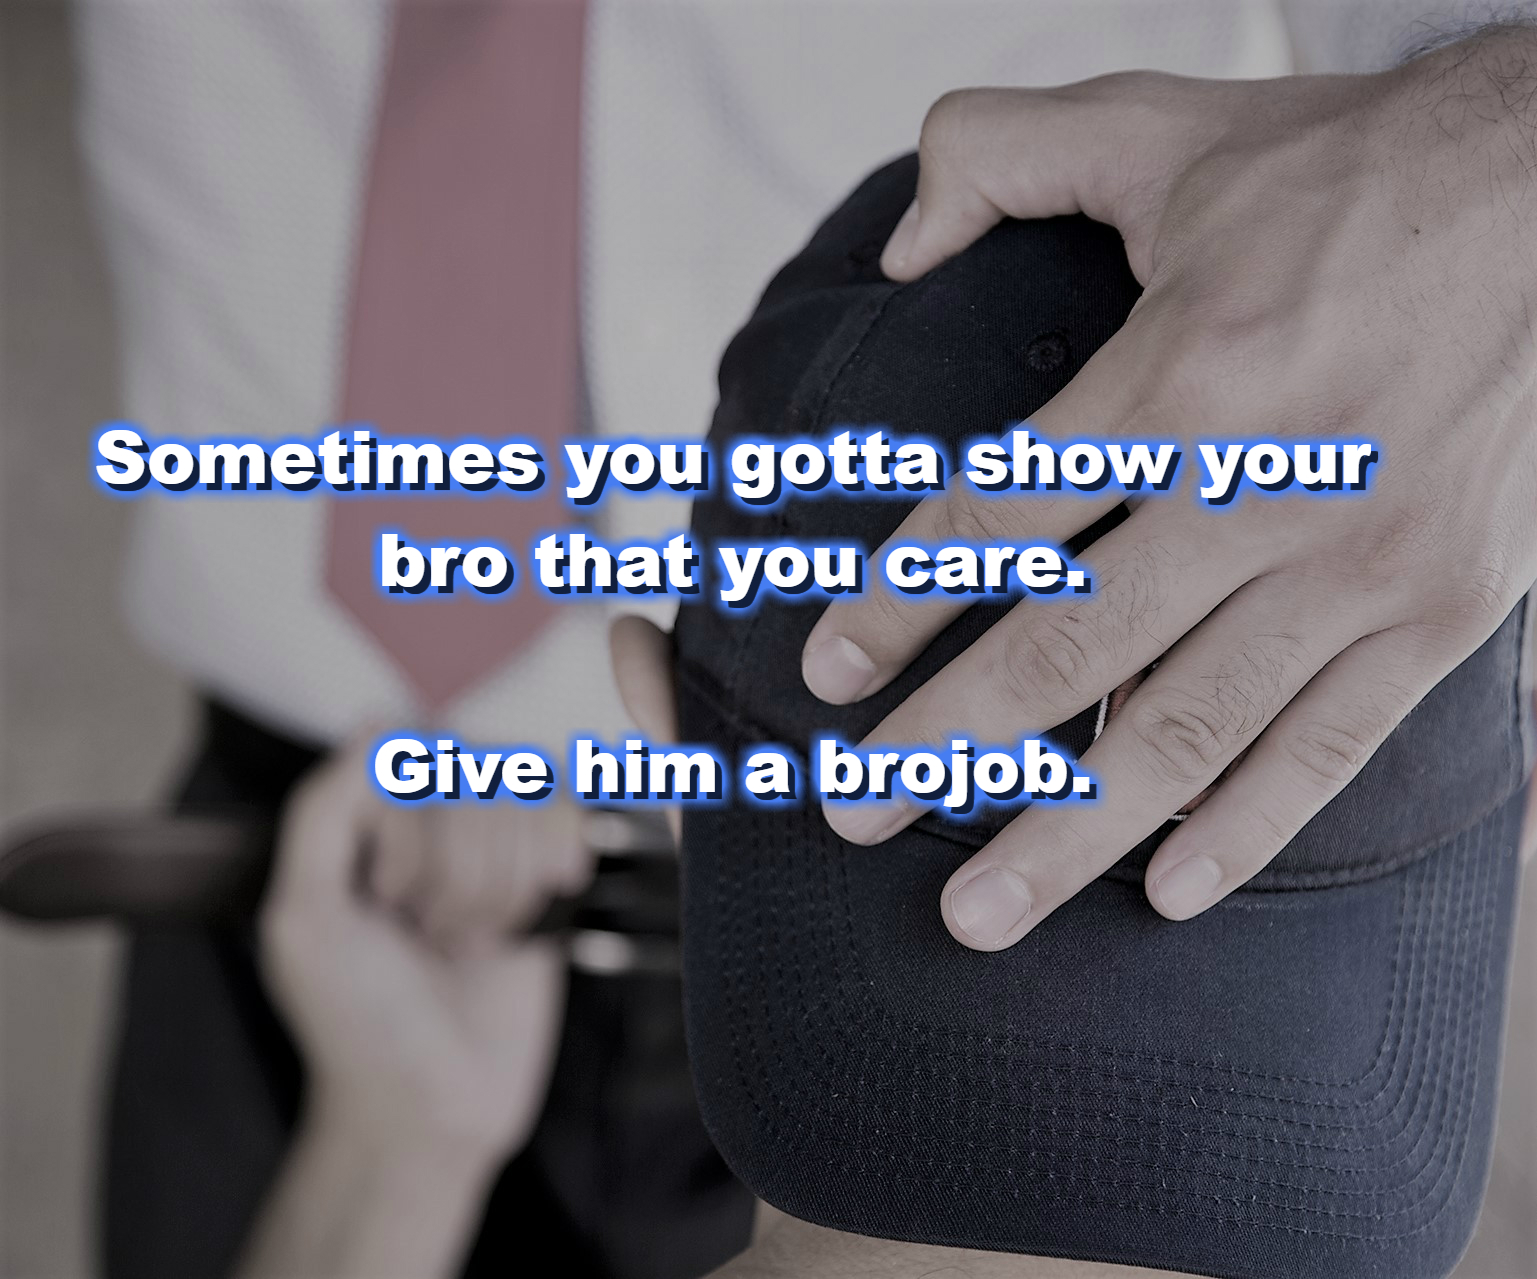 Porn Brojob brojob - for the straight guys who just need a little head